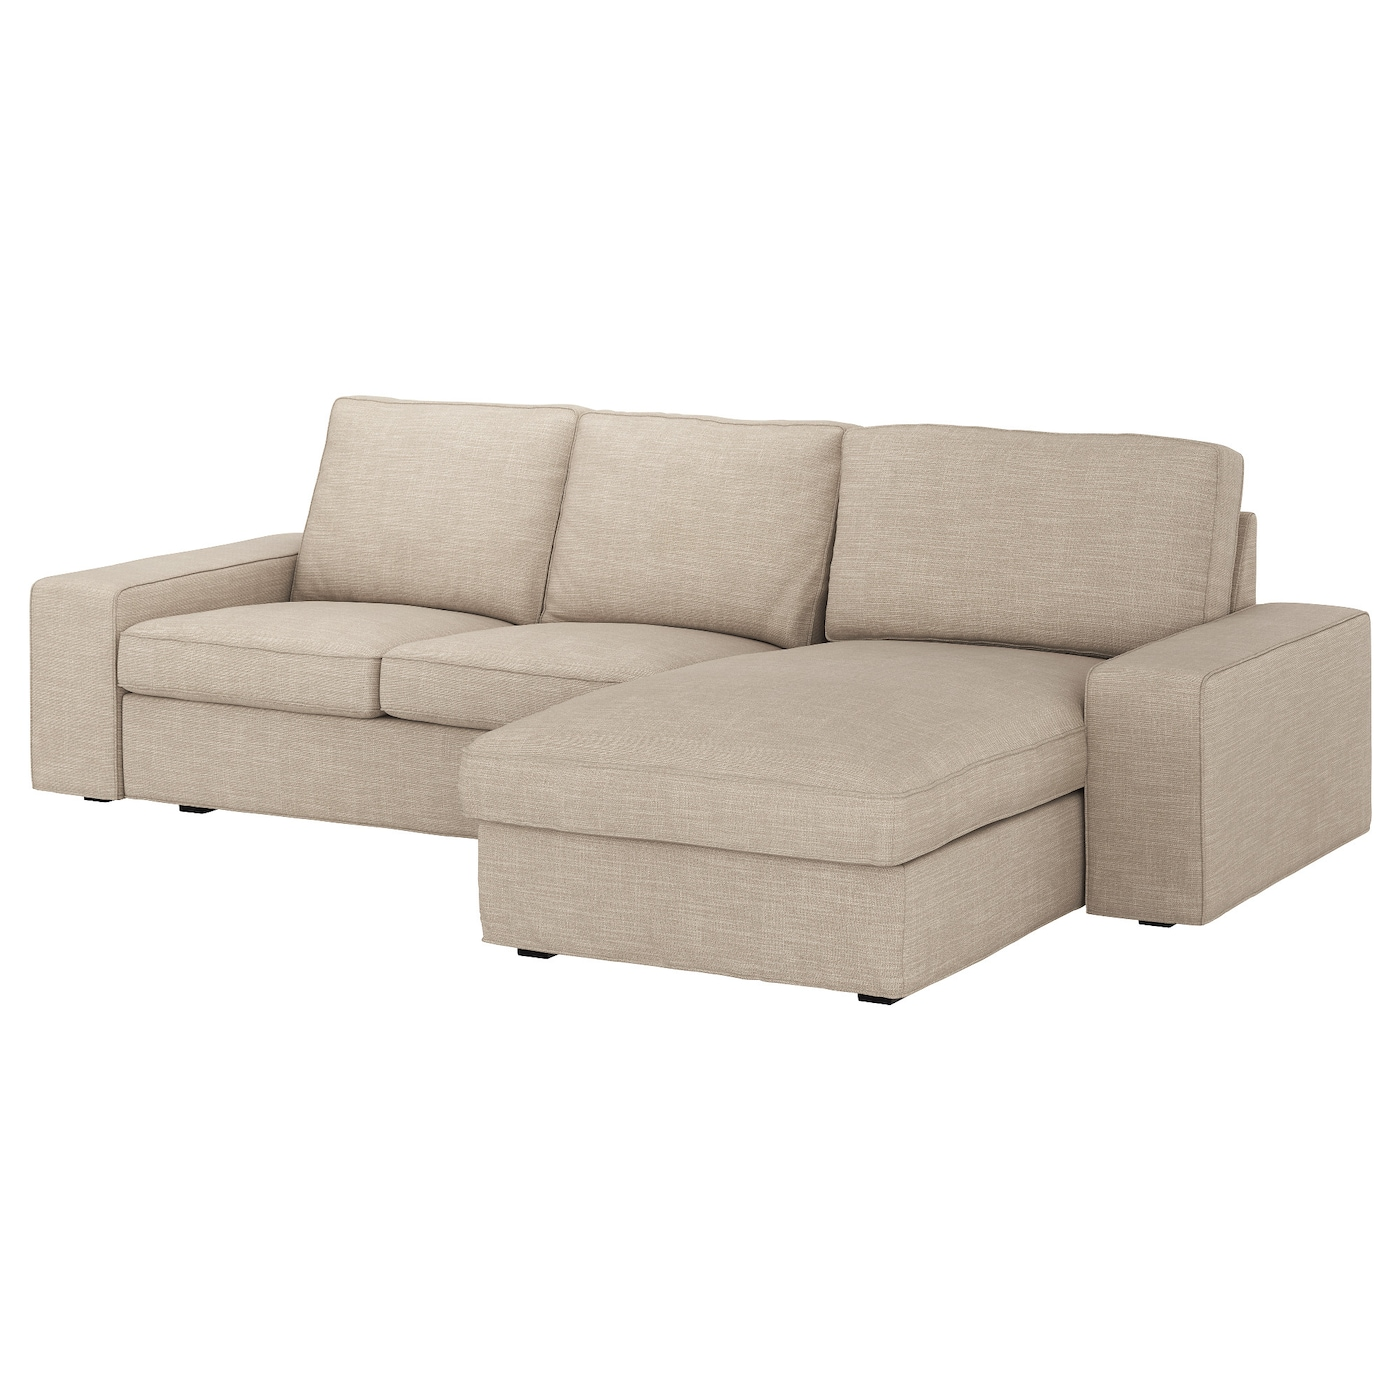 Kivik 3 seat sofa with chaise longue hillared beige ikea for Buy chaise longue